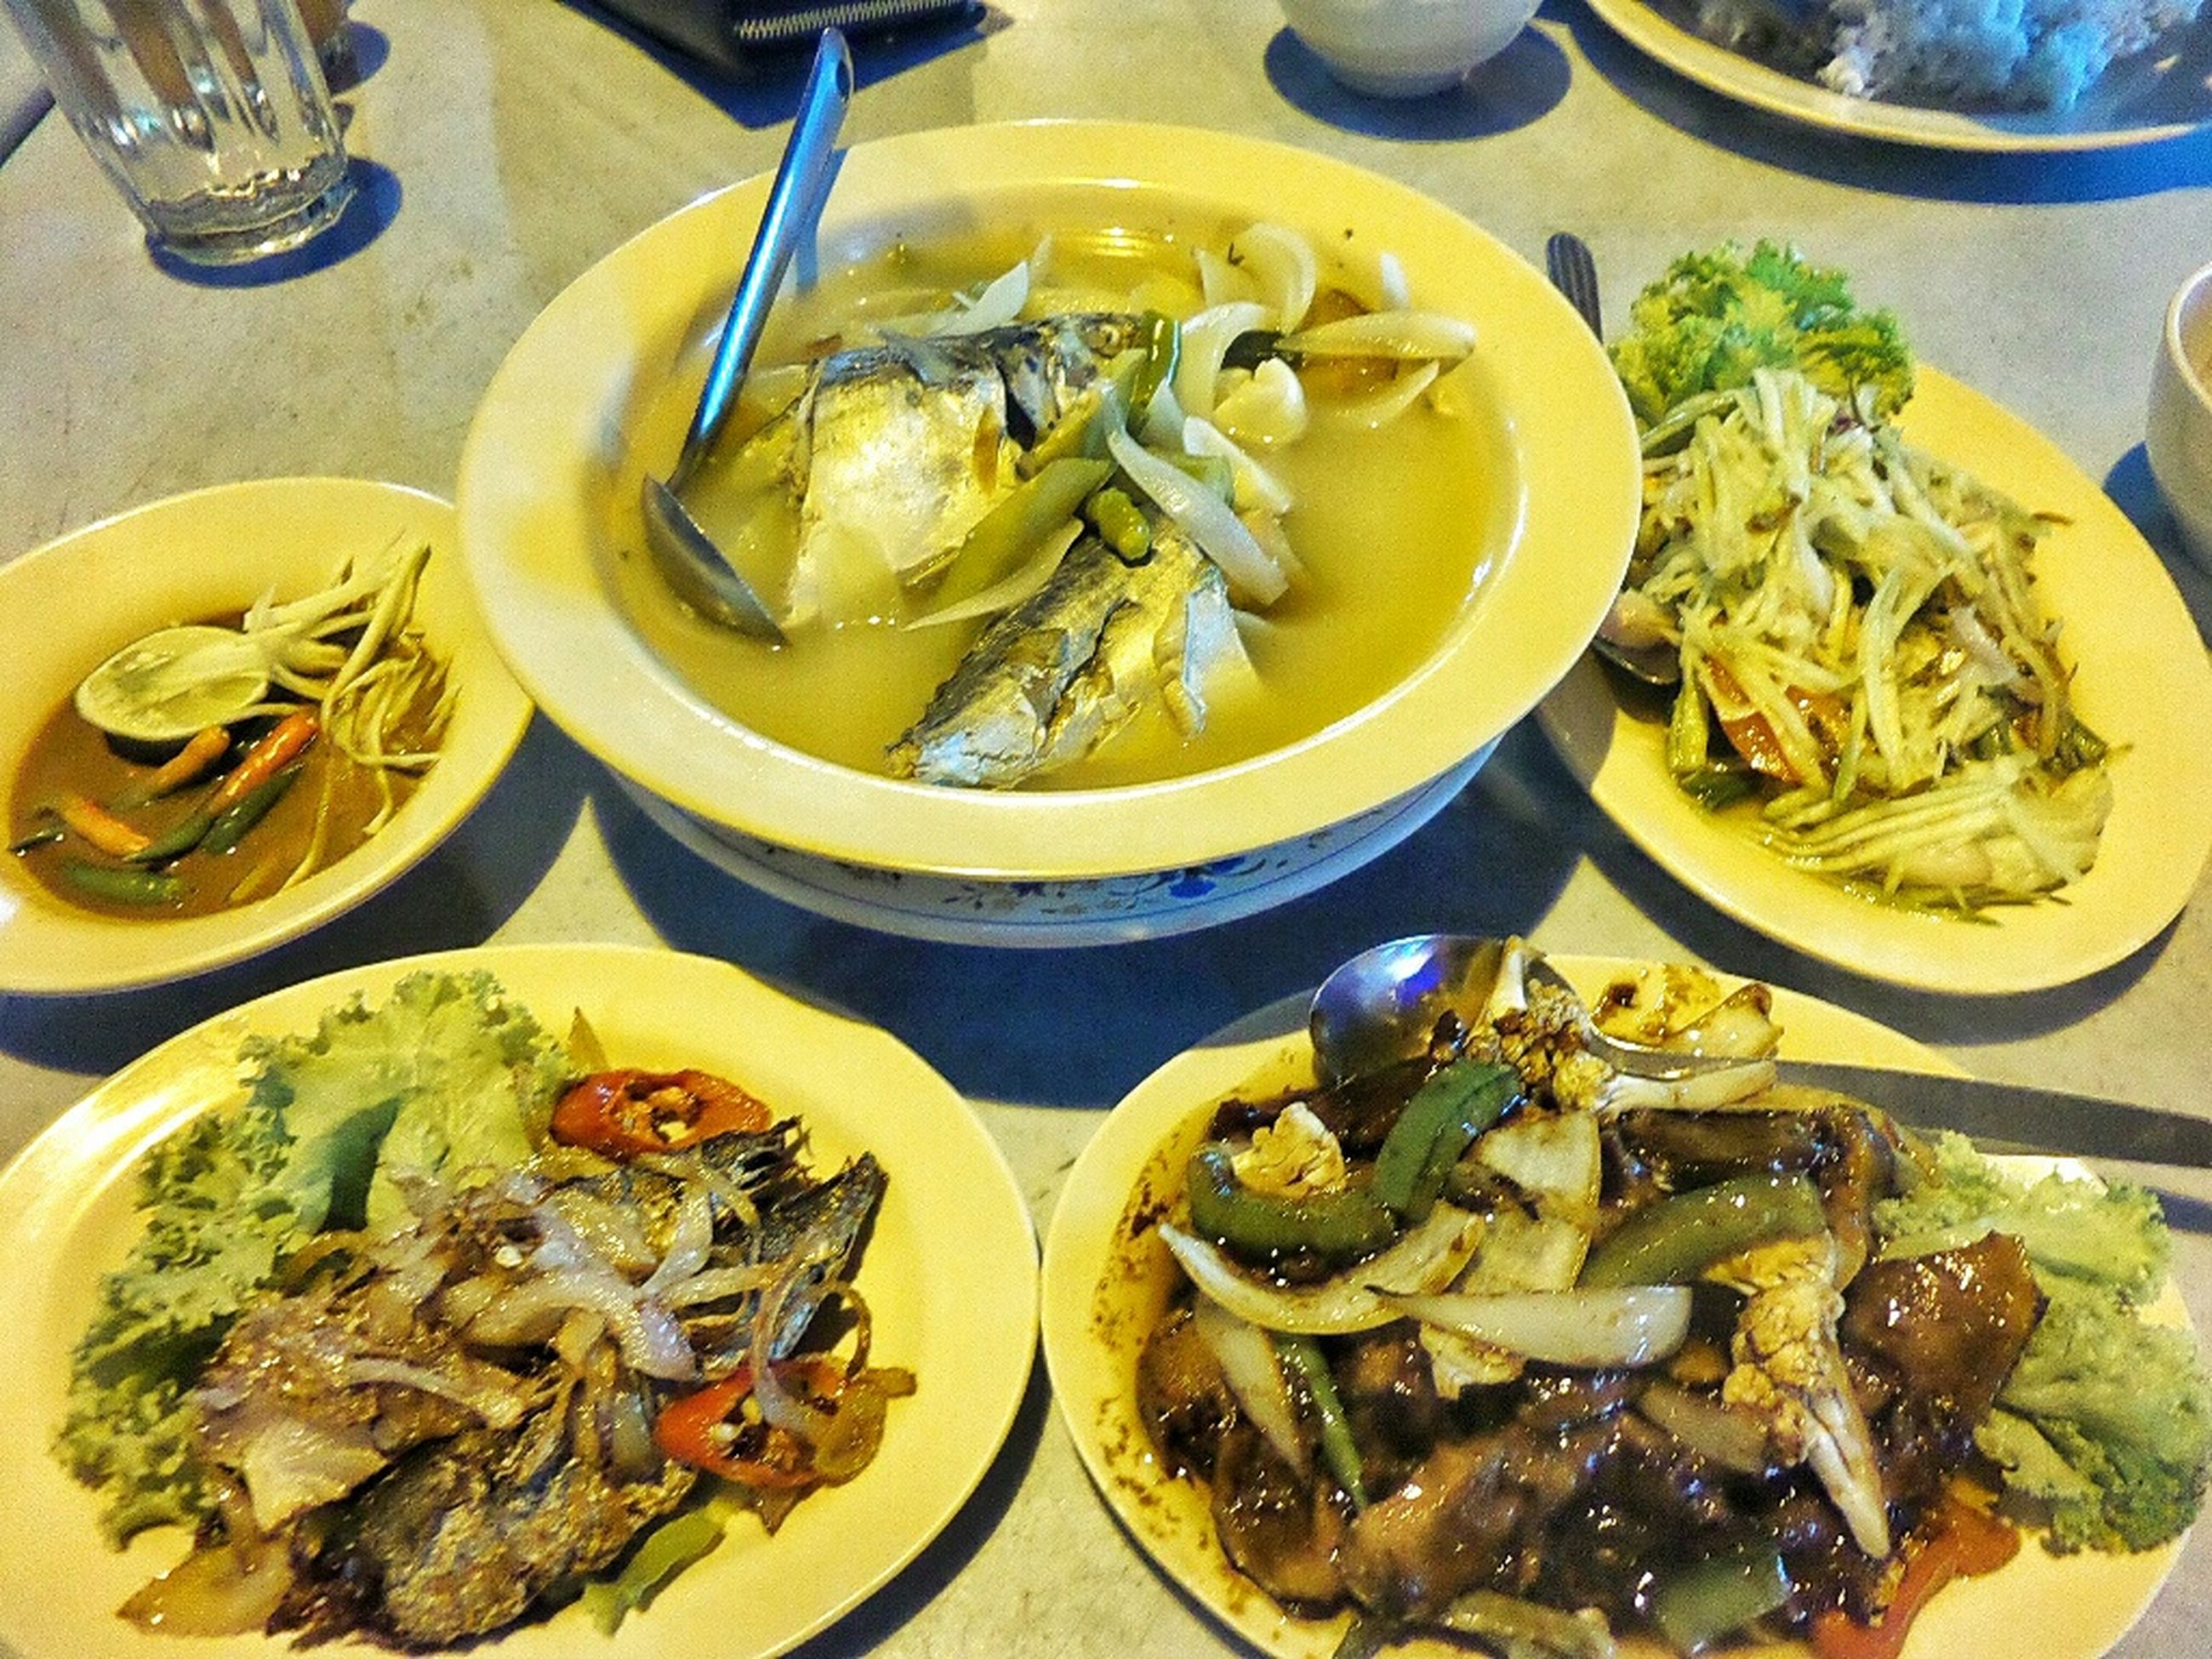 food and drink, food, indoors, freshness, ready-to-eat, healthy eating, meal, plate, bowl, still life, noodles, serving size, seafood, high angle view, close-up, table, vegetable, meat, prawn, pasta